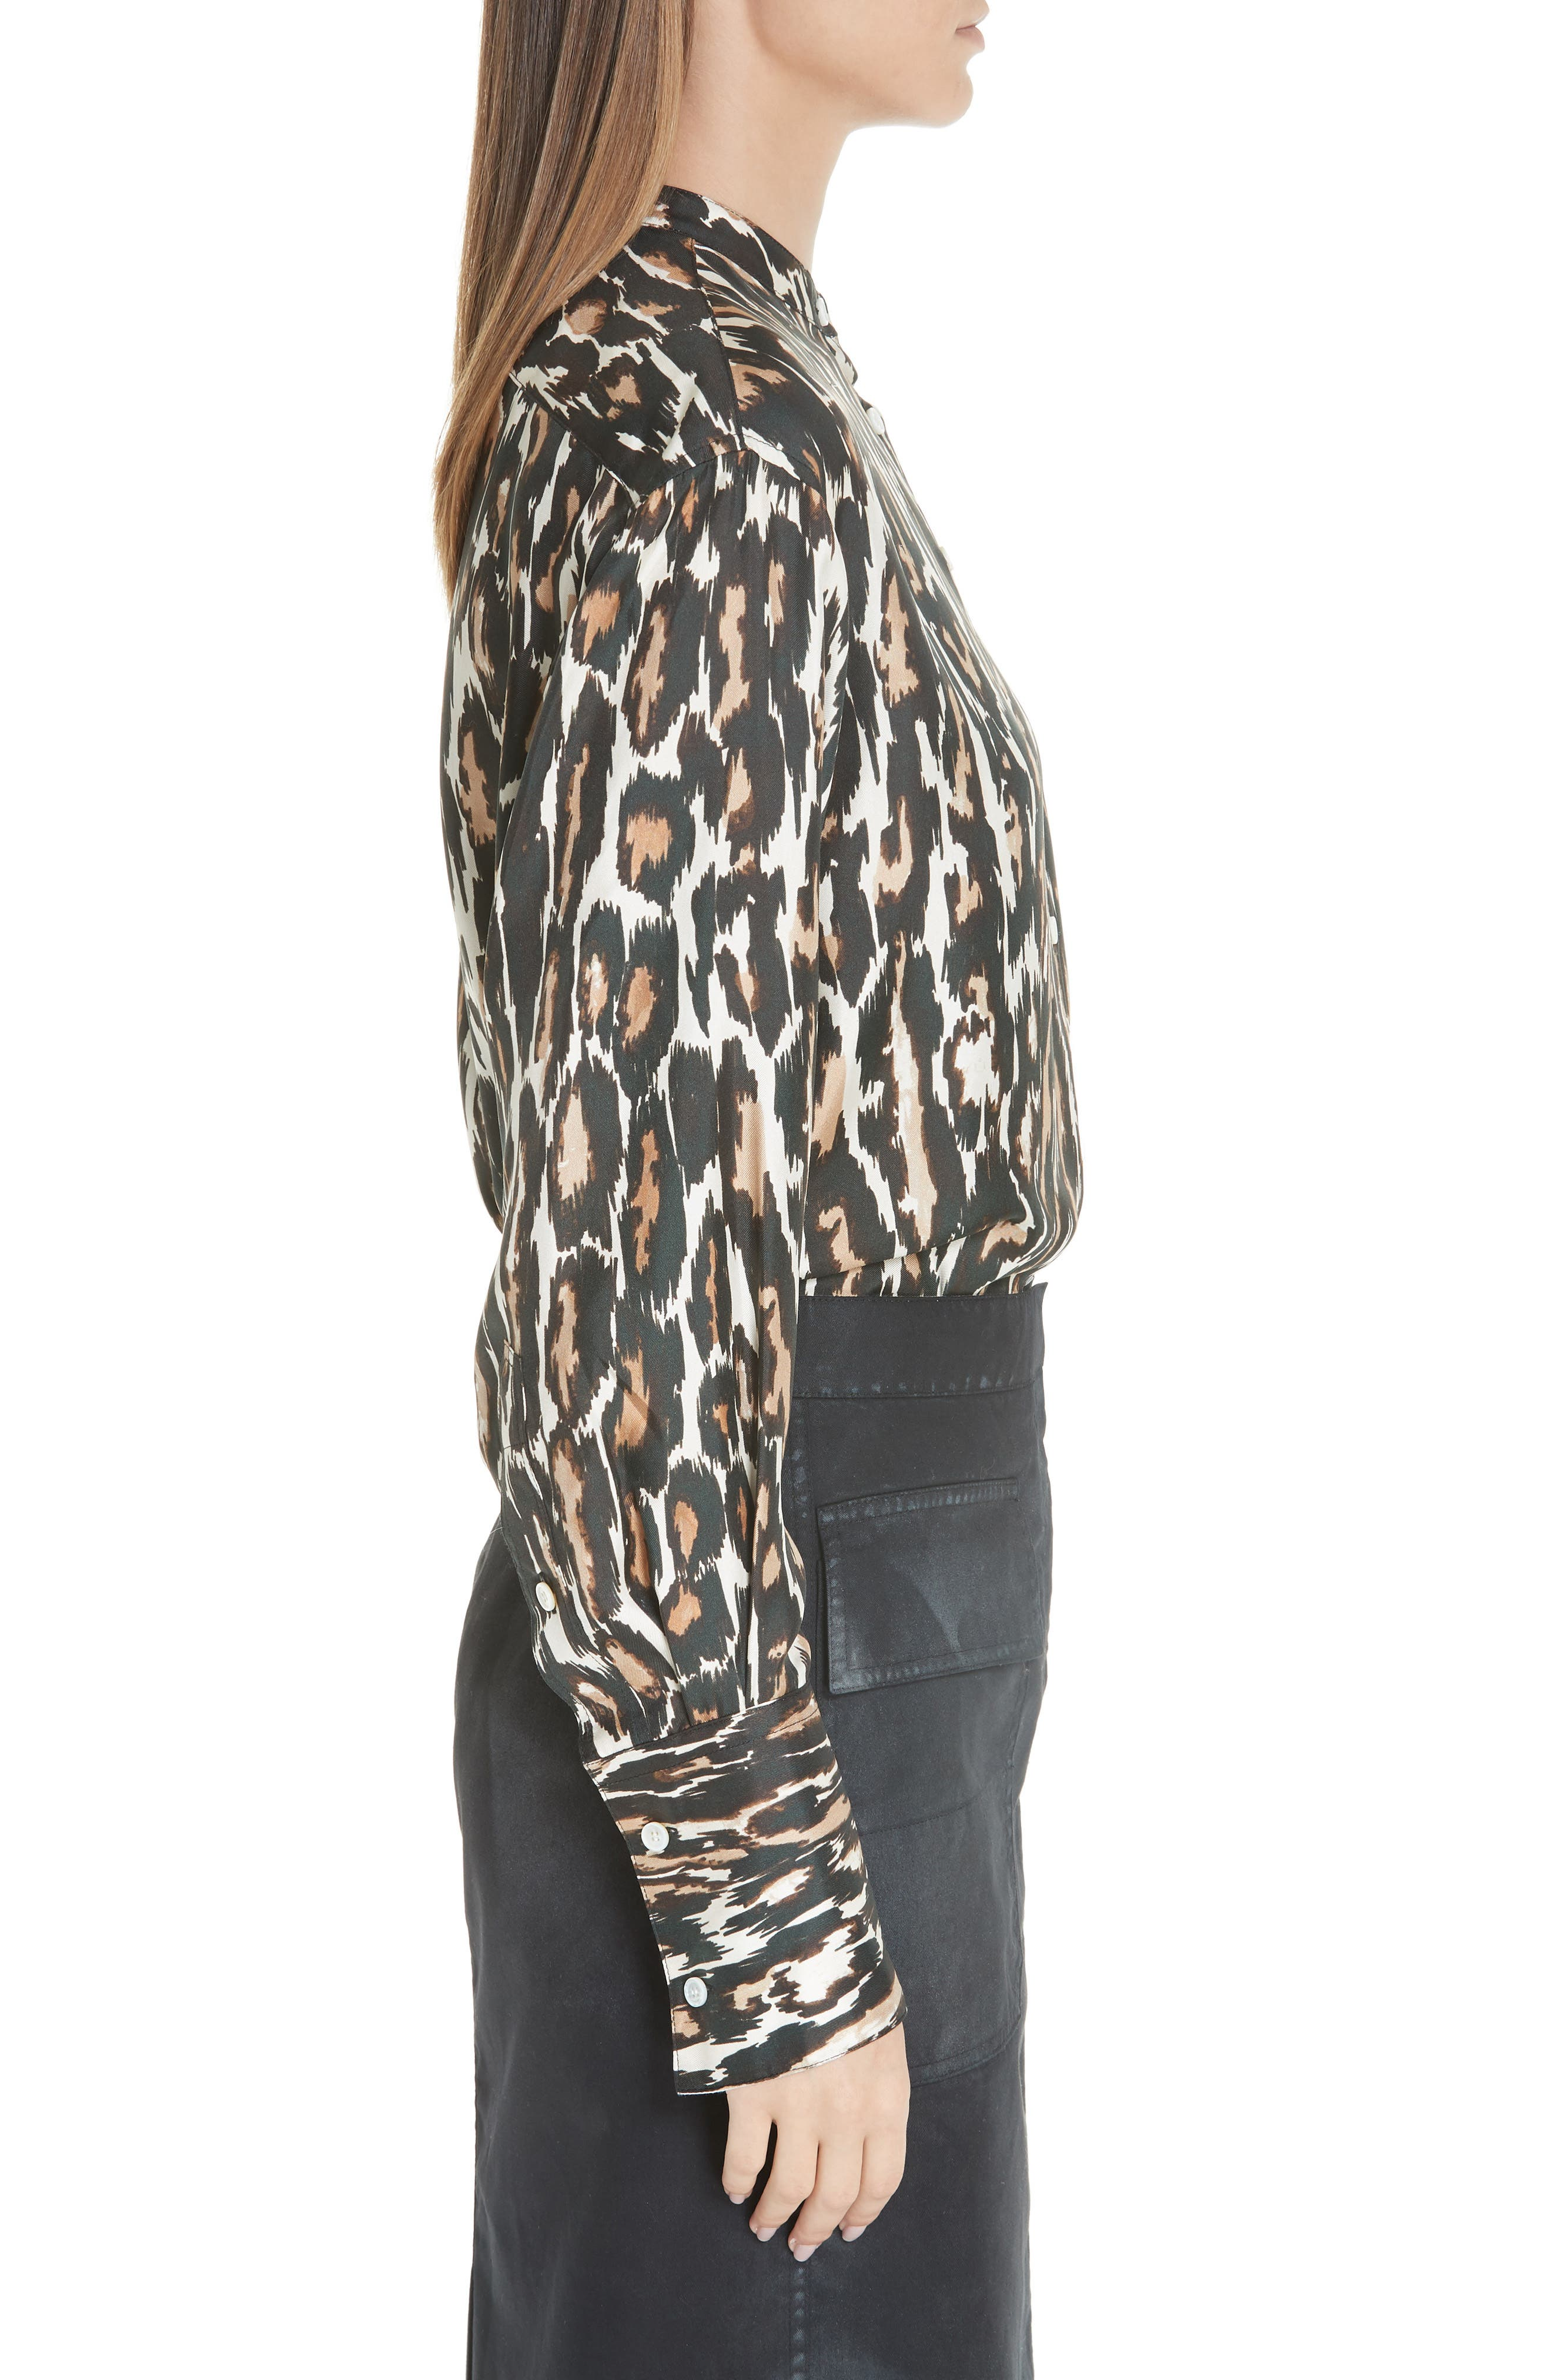 Leopard Print Silk Twill Blouse,                             Alternate thumbnail 3, color,                             IVORY BROWN BLACK BEIGE